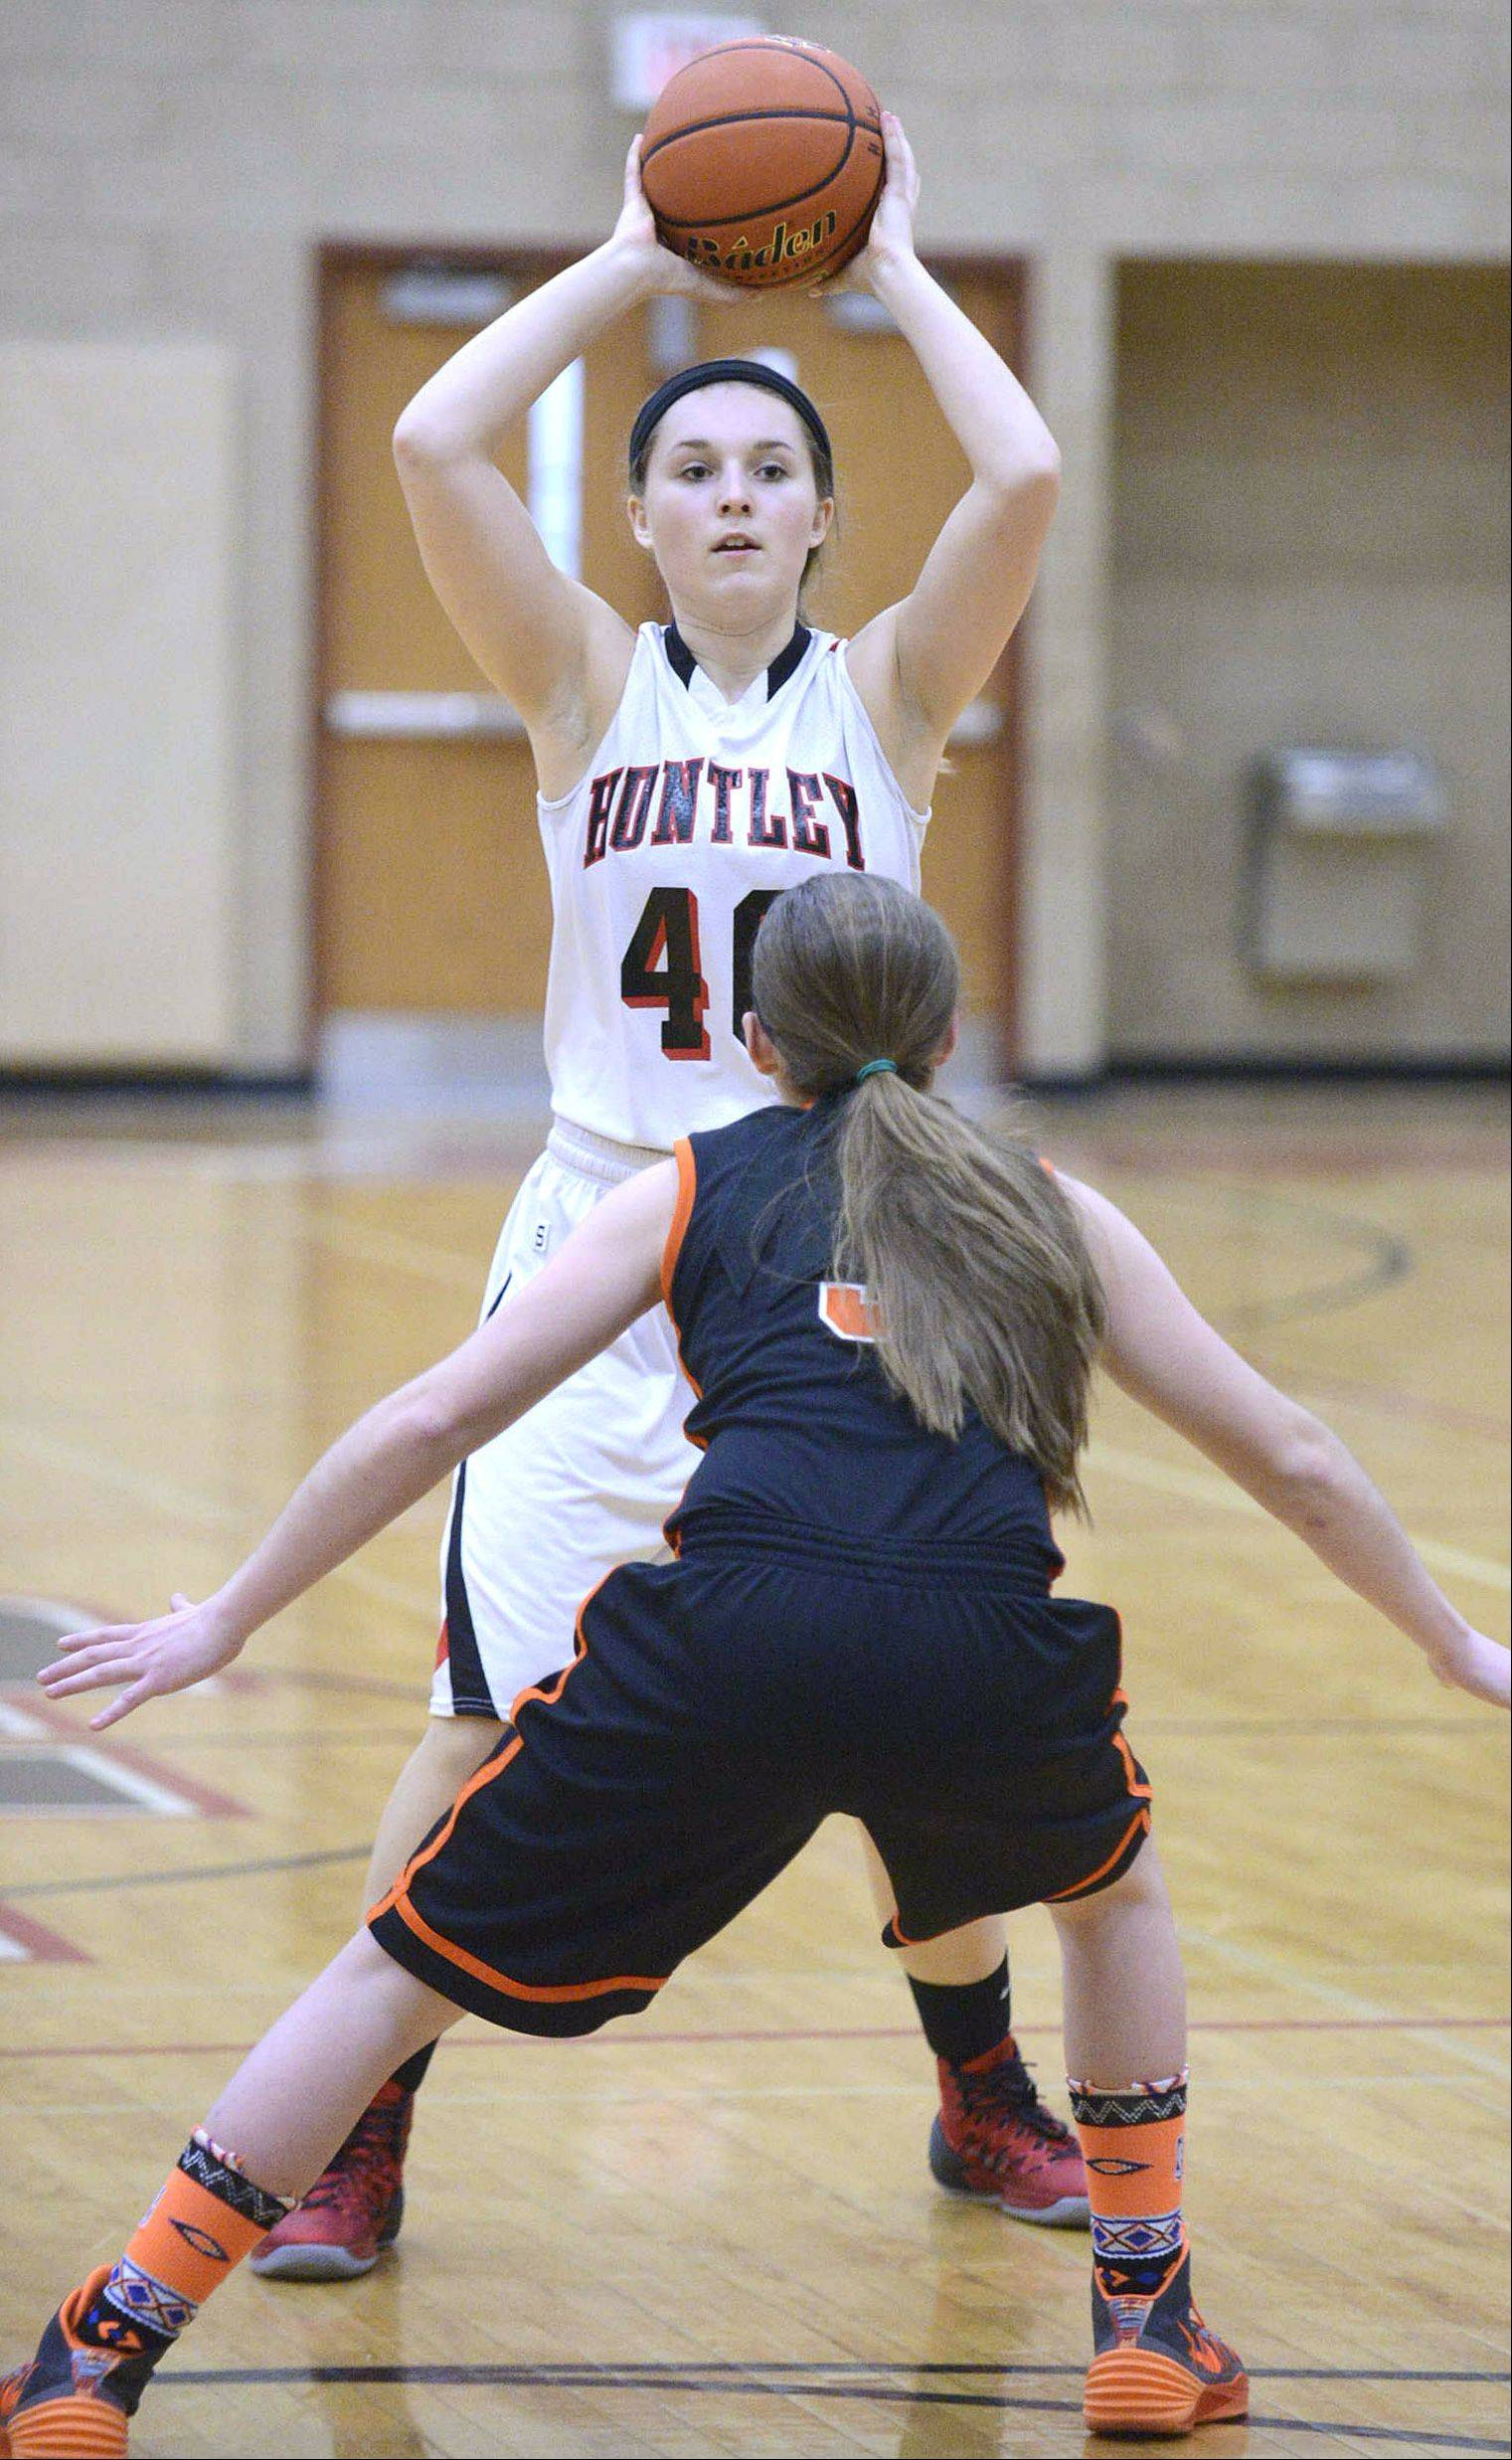 Images from the McHenry at Huntley girls basketball game Wednesday, February 5, 2014 in Huntley.